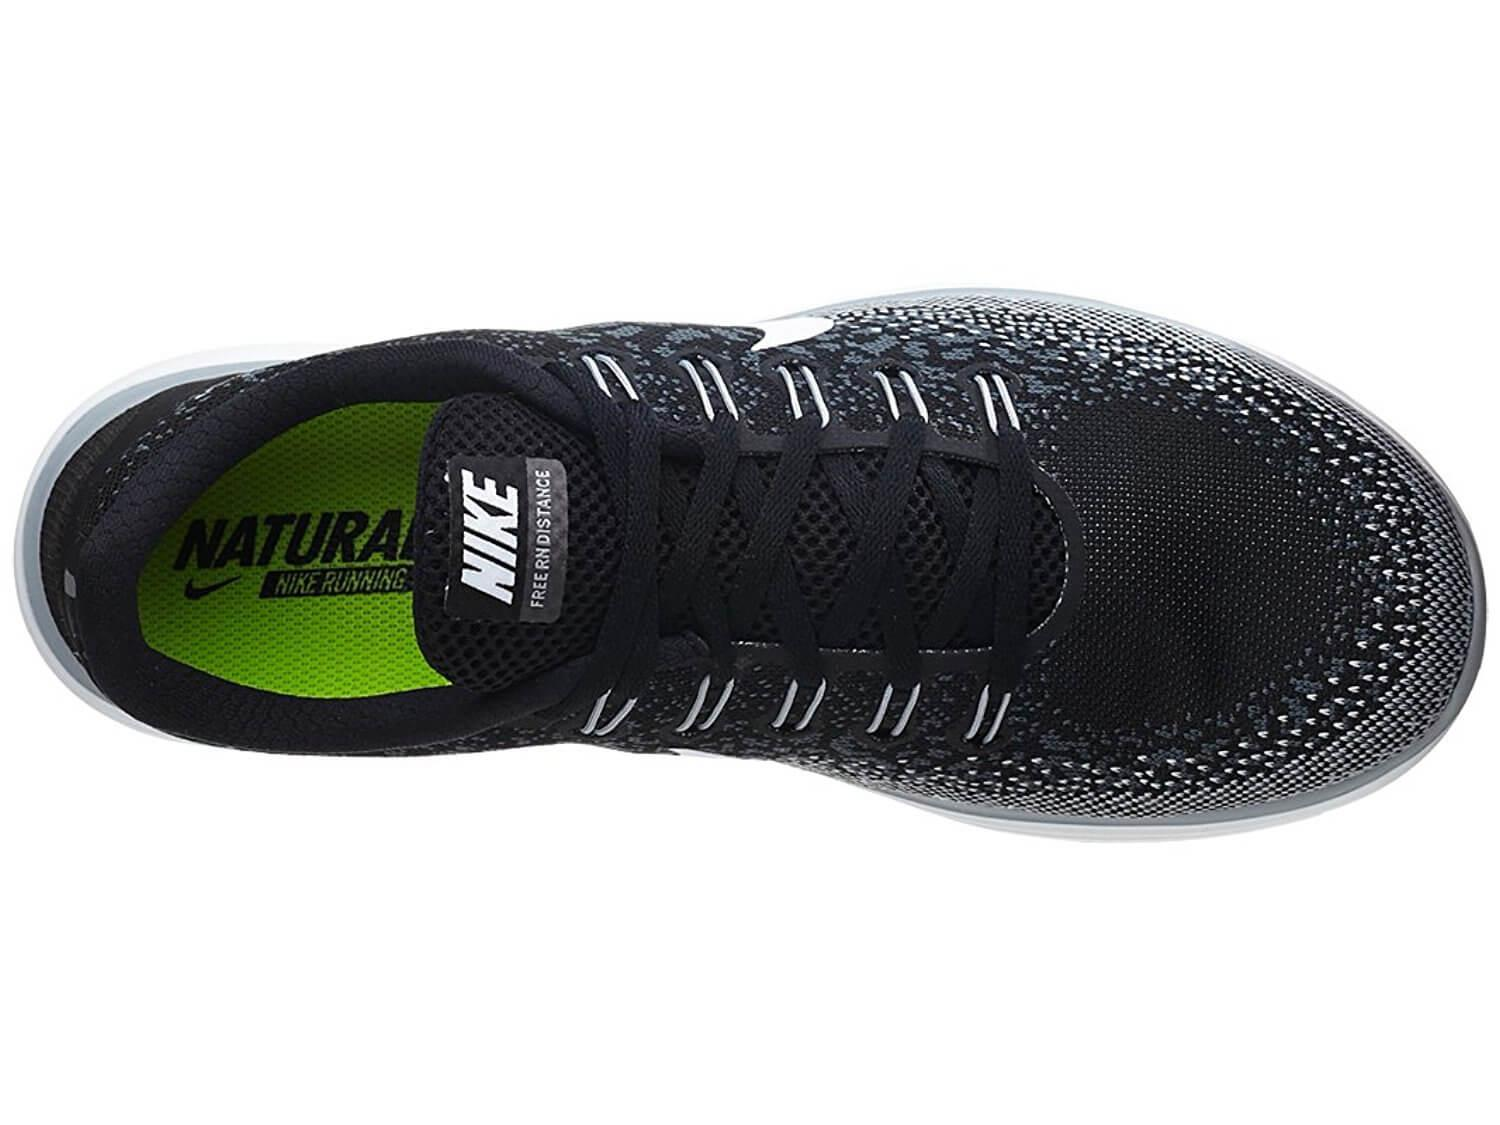 A single-layer knit upper on the Nike Free RN Distance helps to keep weight low and breathability high.